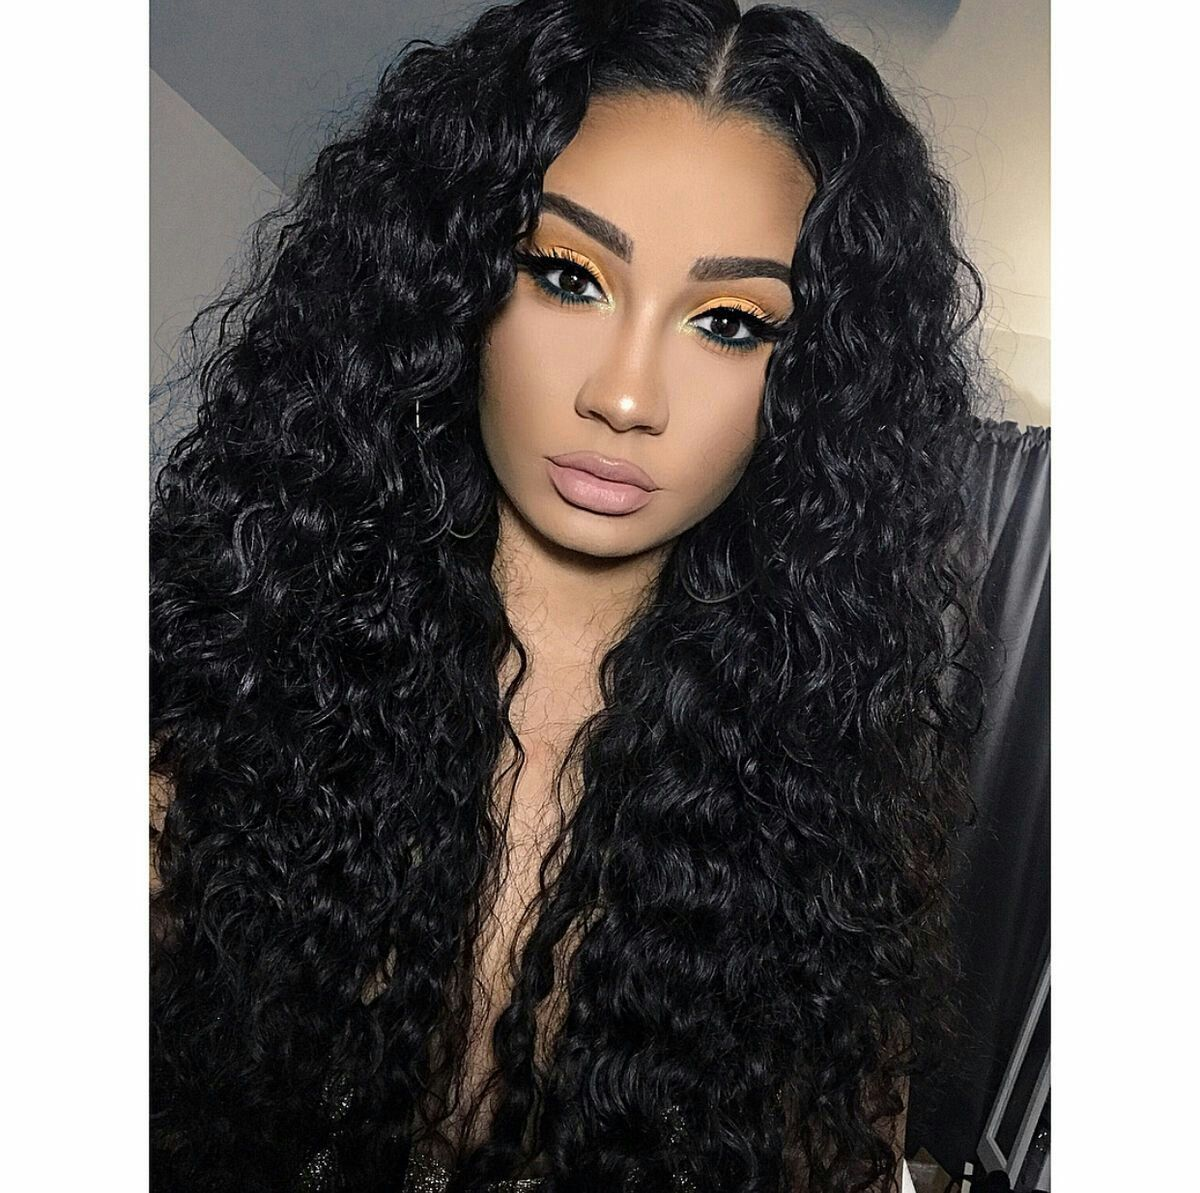 Hair Extensions & Wigs Straightforward Queen Brazilian Body Wave 3 Or 4 Bundles With Closure 613 Blonde Color Non-remy Human Hair Bundles With Closure 3/4 Bundles With Closure